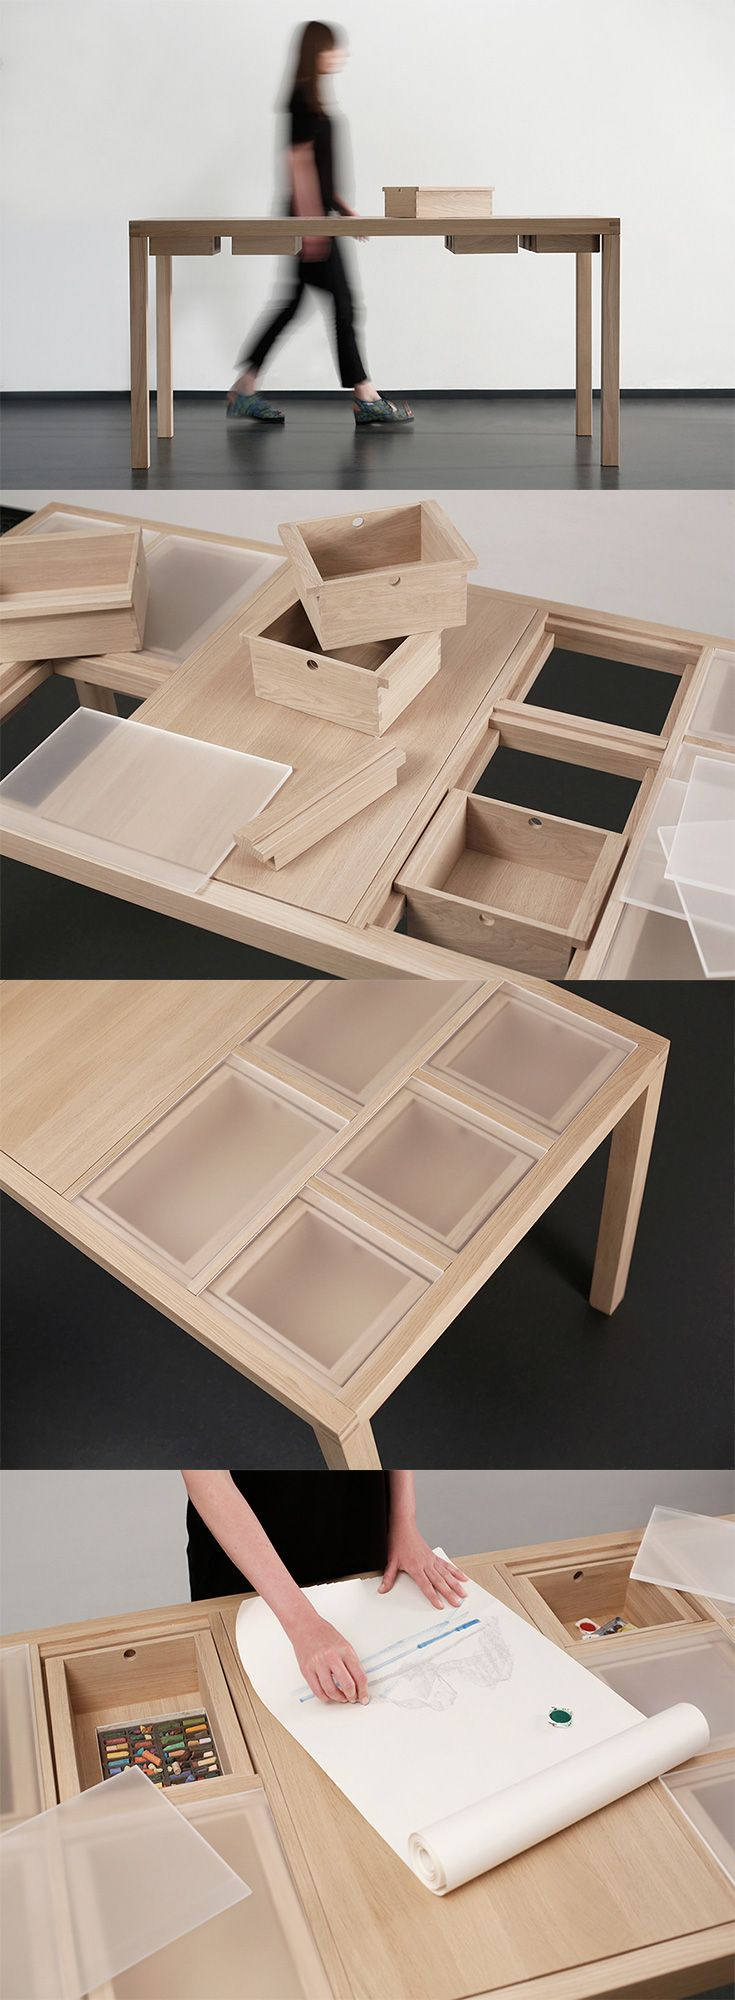 Designer Laura Mrkša's workbench completely adapts to the craftsman's unique needs, the modular table system consists of a fixed raster on top with  customizable spaces for storage... READ MORE at Yanko Design !